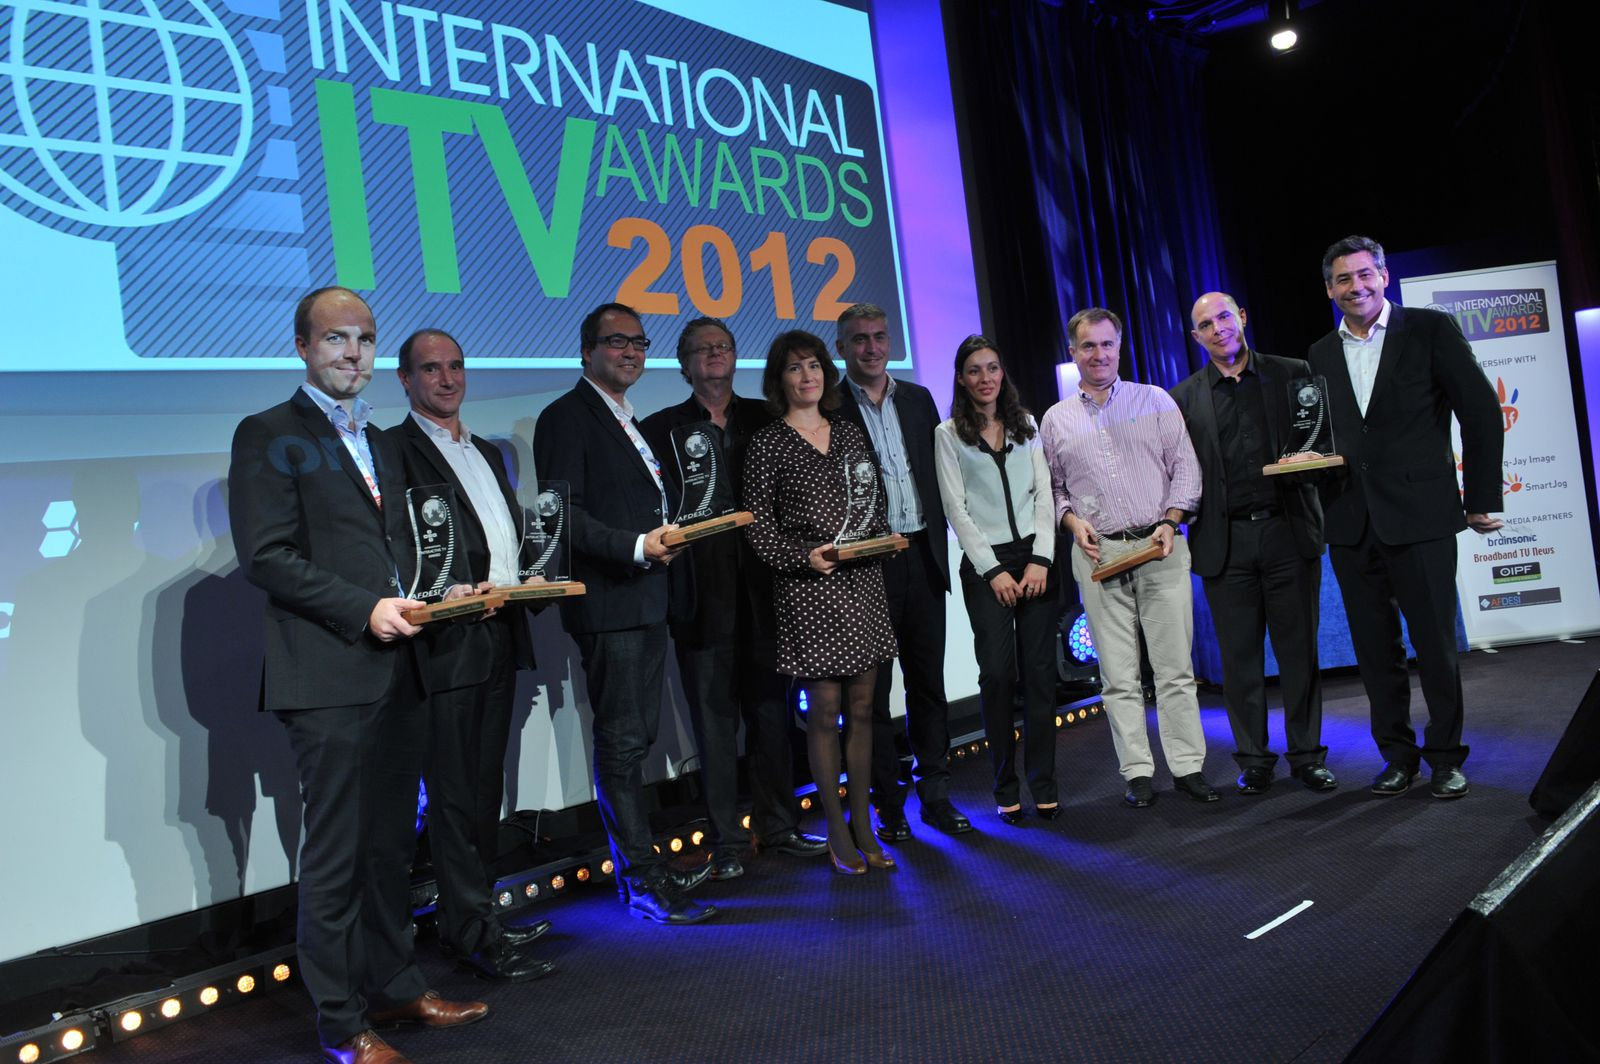 Les lauréats des International Interactive TV Awards au MipCom 2012, Cannes, France